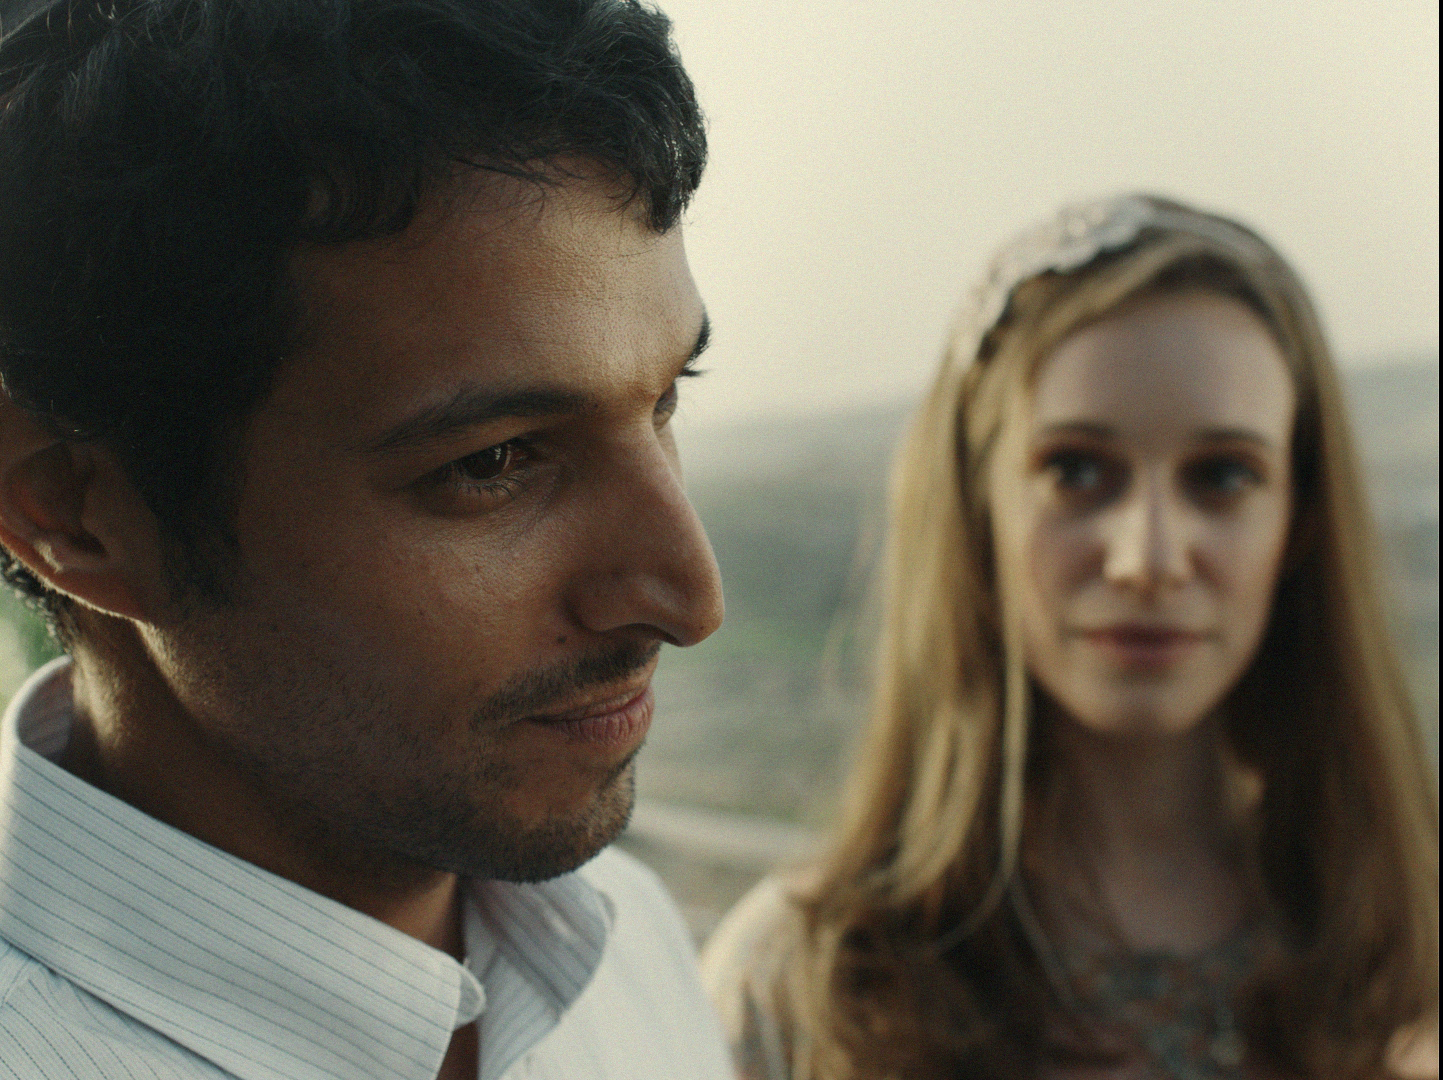 Yehuda Nahari Halev as Yagil Amir and Daniella Kertesz as his girlfriend, Nava, in a scene from Yaron Zilberman's film